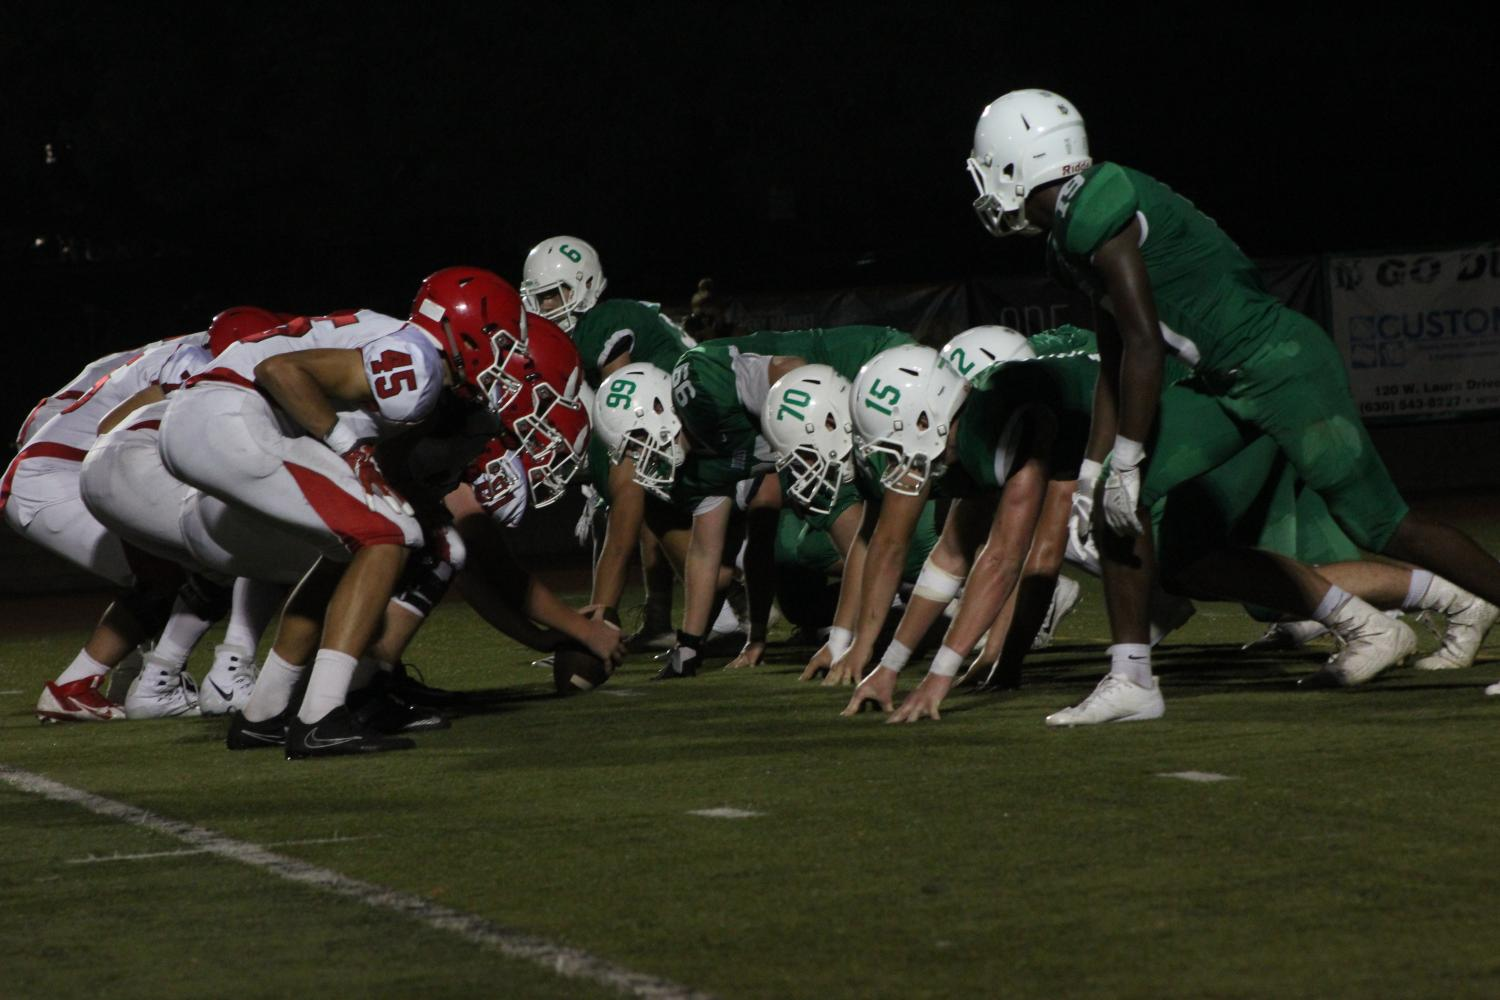 York High School and Hinsdale Central position themselves for a line of scrimmage at the Homecoming football game. Fri., Sept. 22, 2017